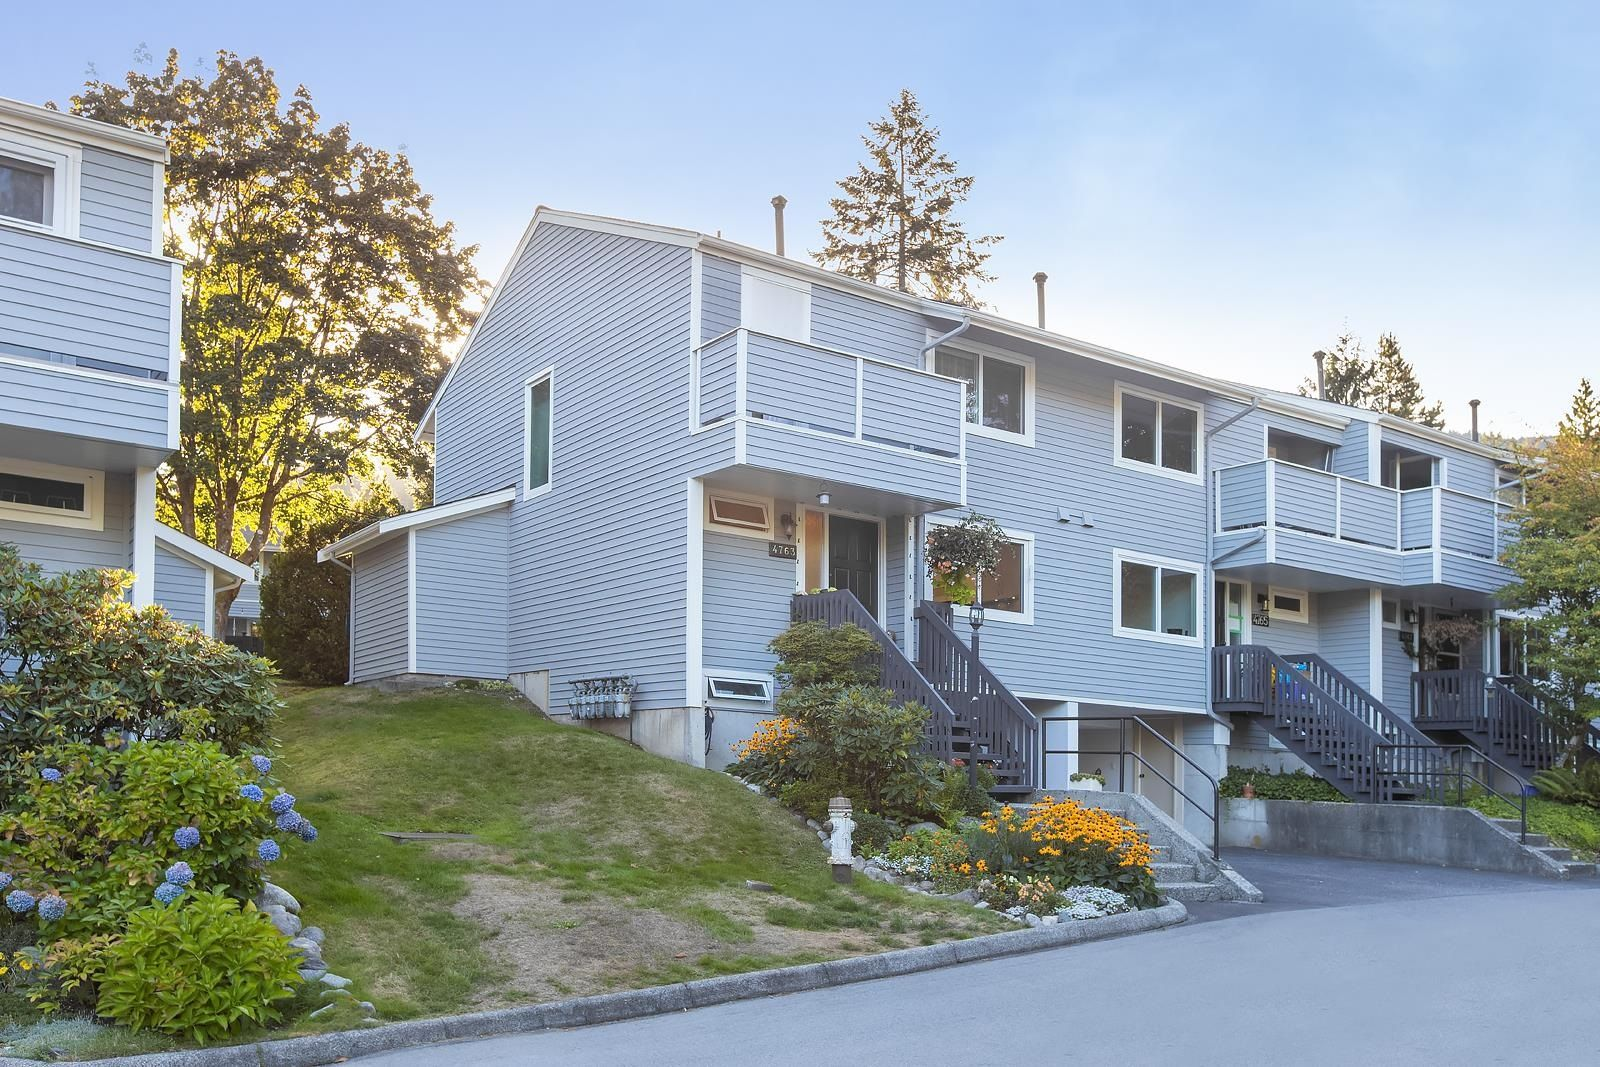 """Main Photo: 4763 HOSKINS Road in North Vancouver: Lynn Valley Townhouse for sale in """"Yorkwood Hills"""" : MLS®# R2617725"""